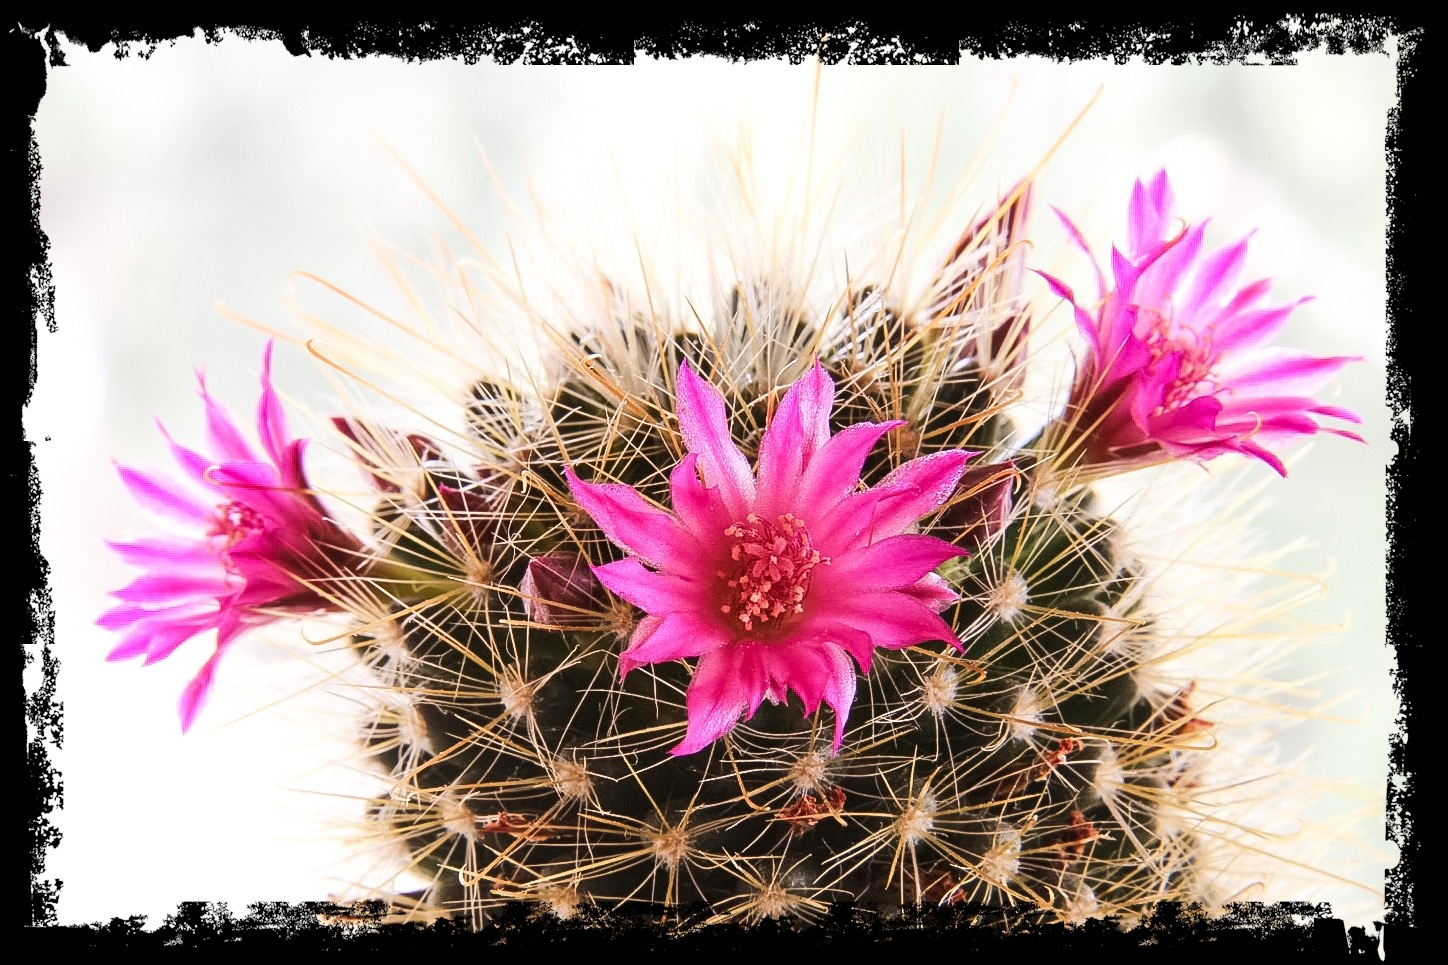 Cactus by Stephan Nenning